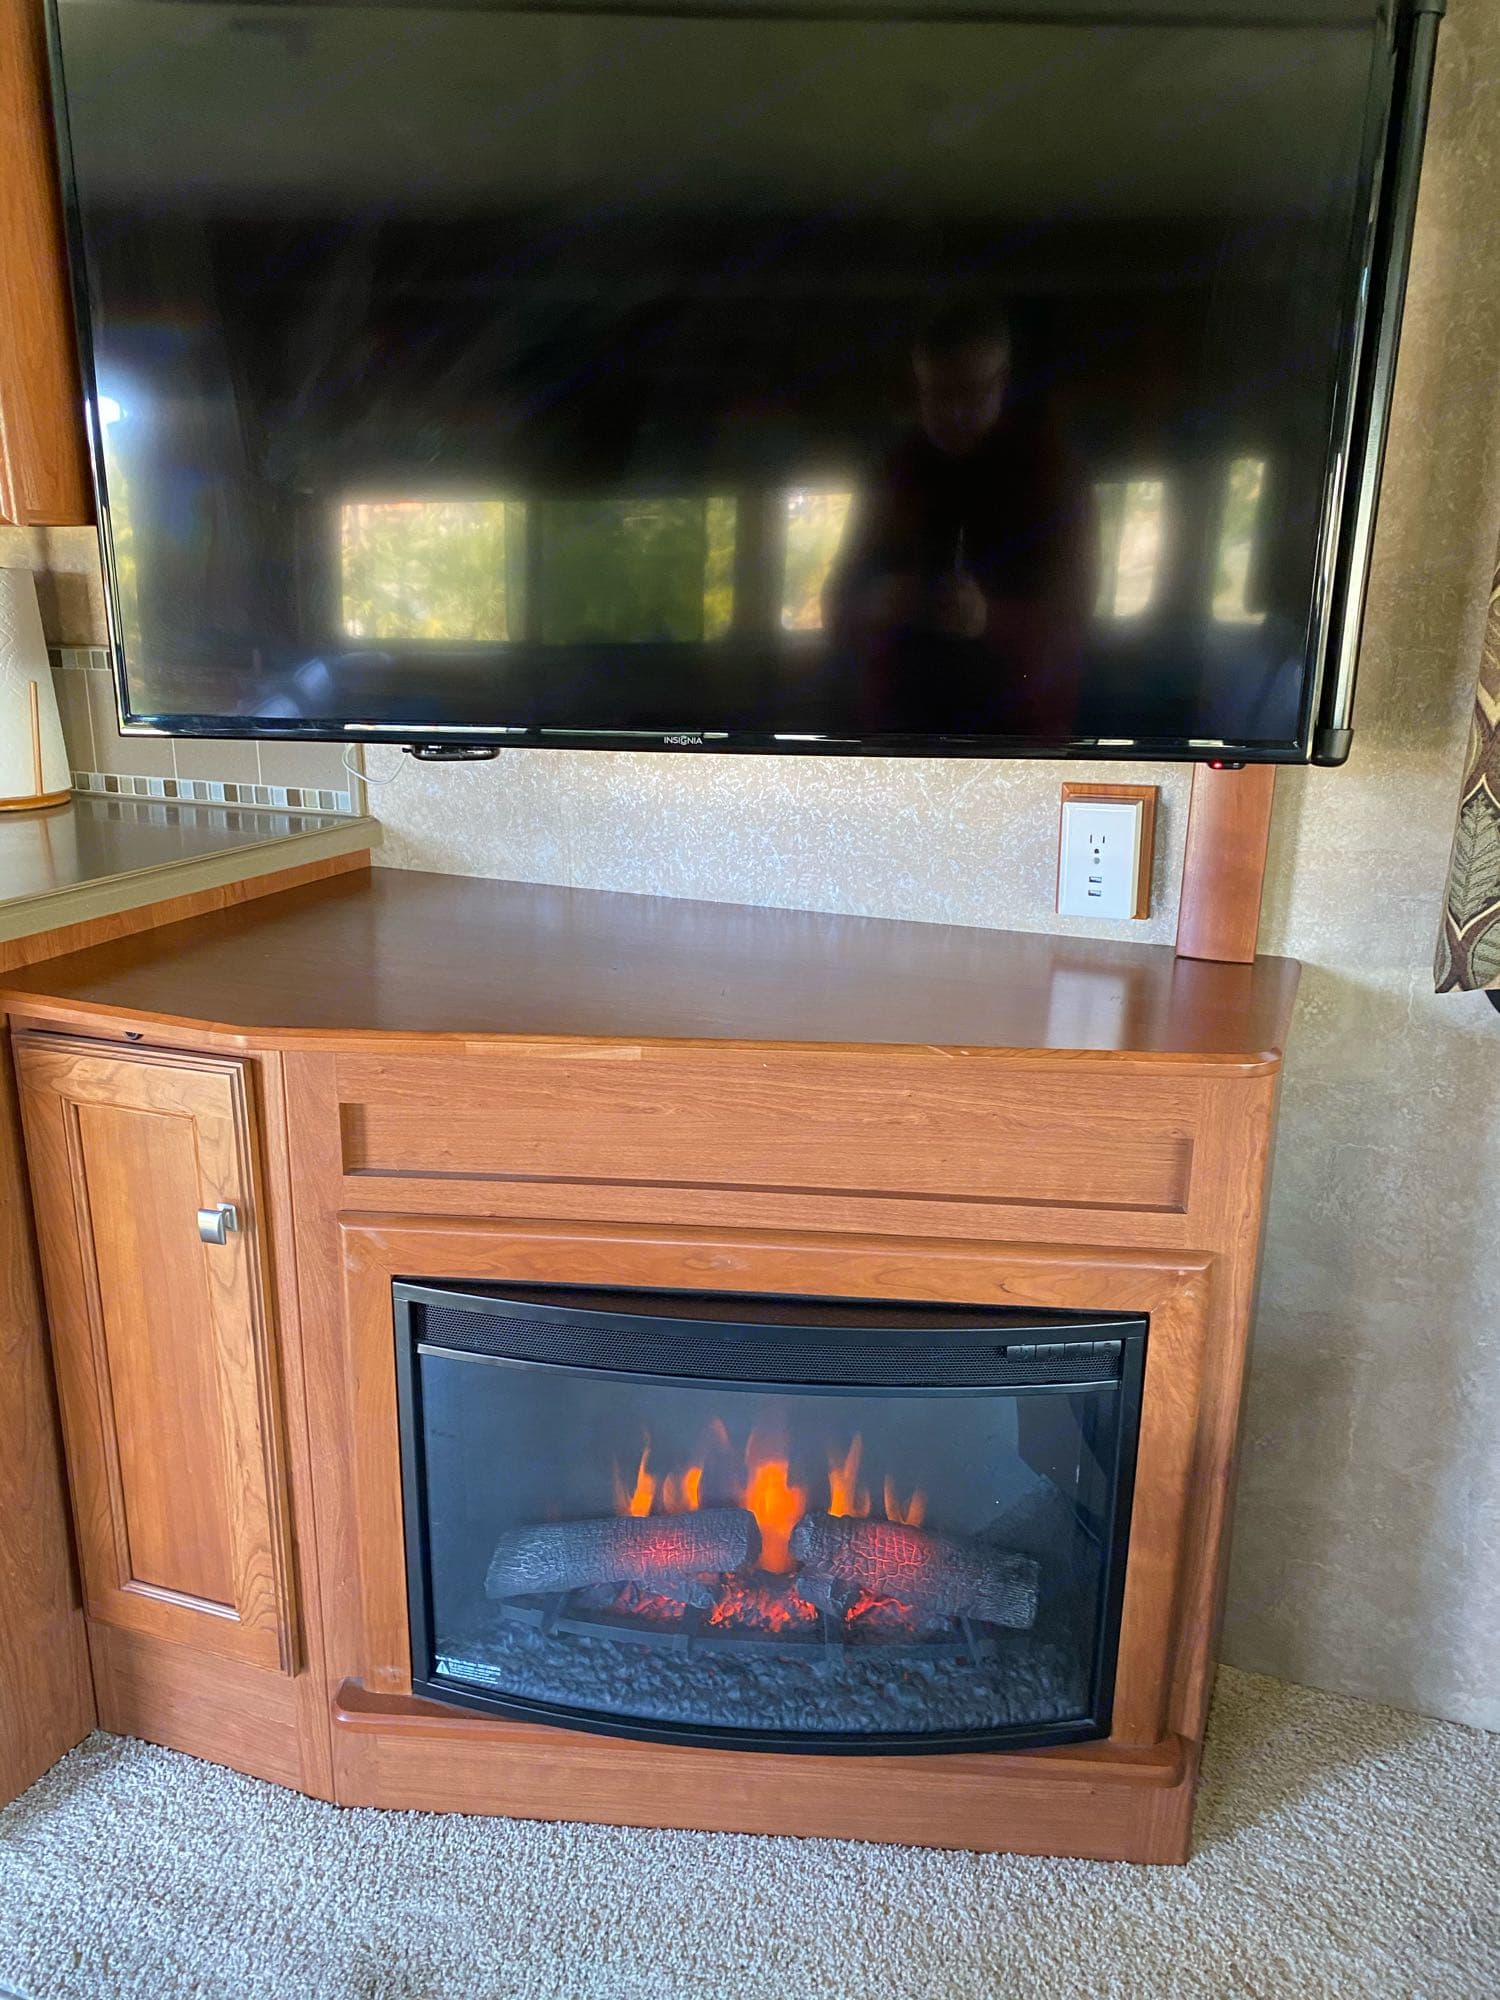 awesome electric fireplace is fun and provides extra warmth.  or can be set for no heat.. Winnebago Sightseer 2015